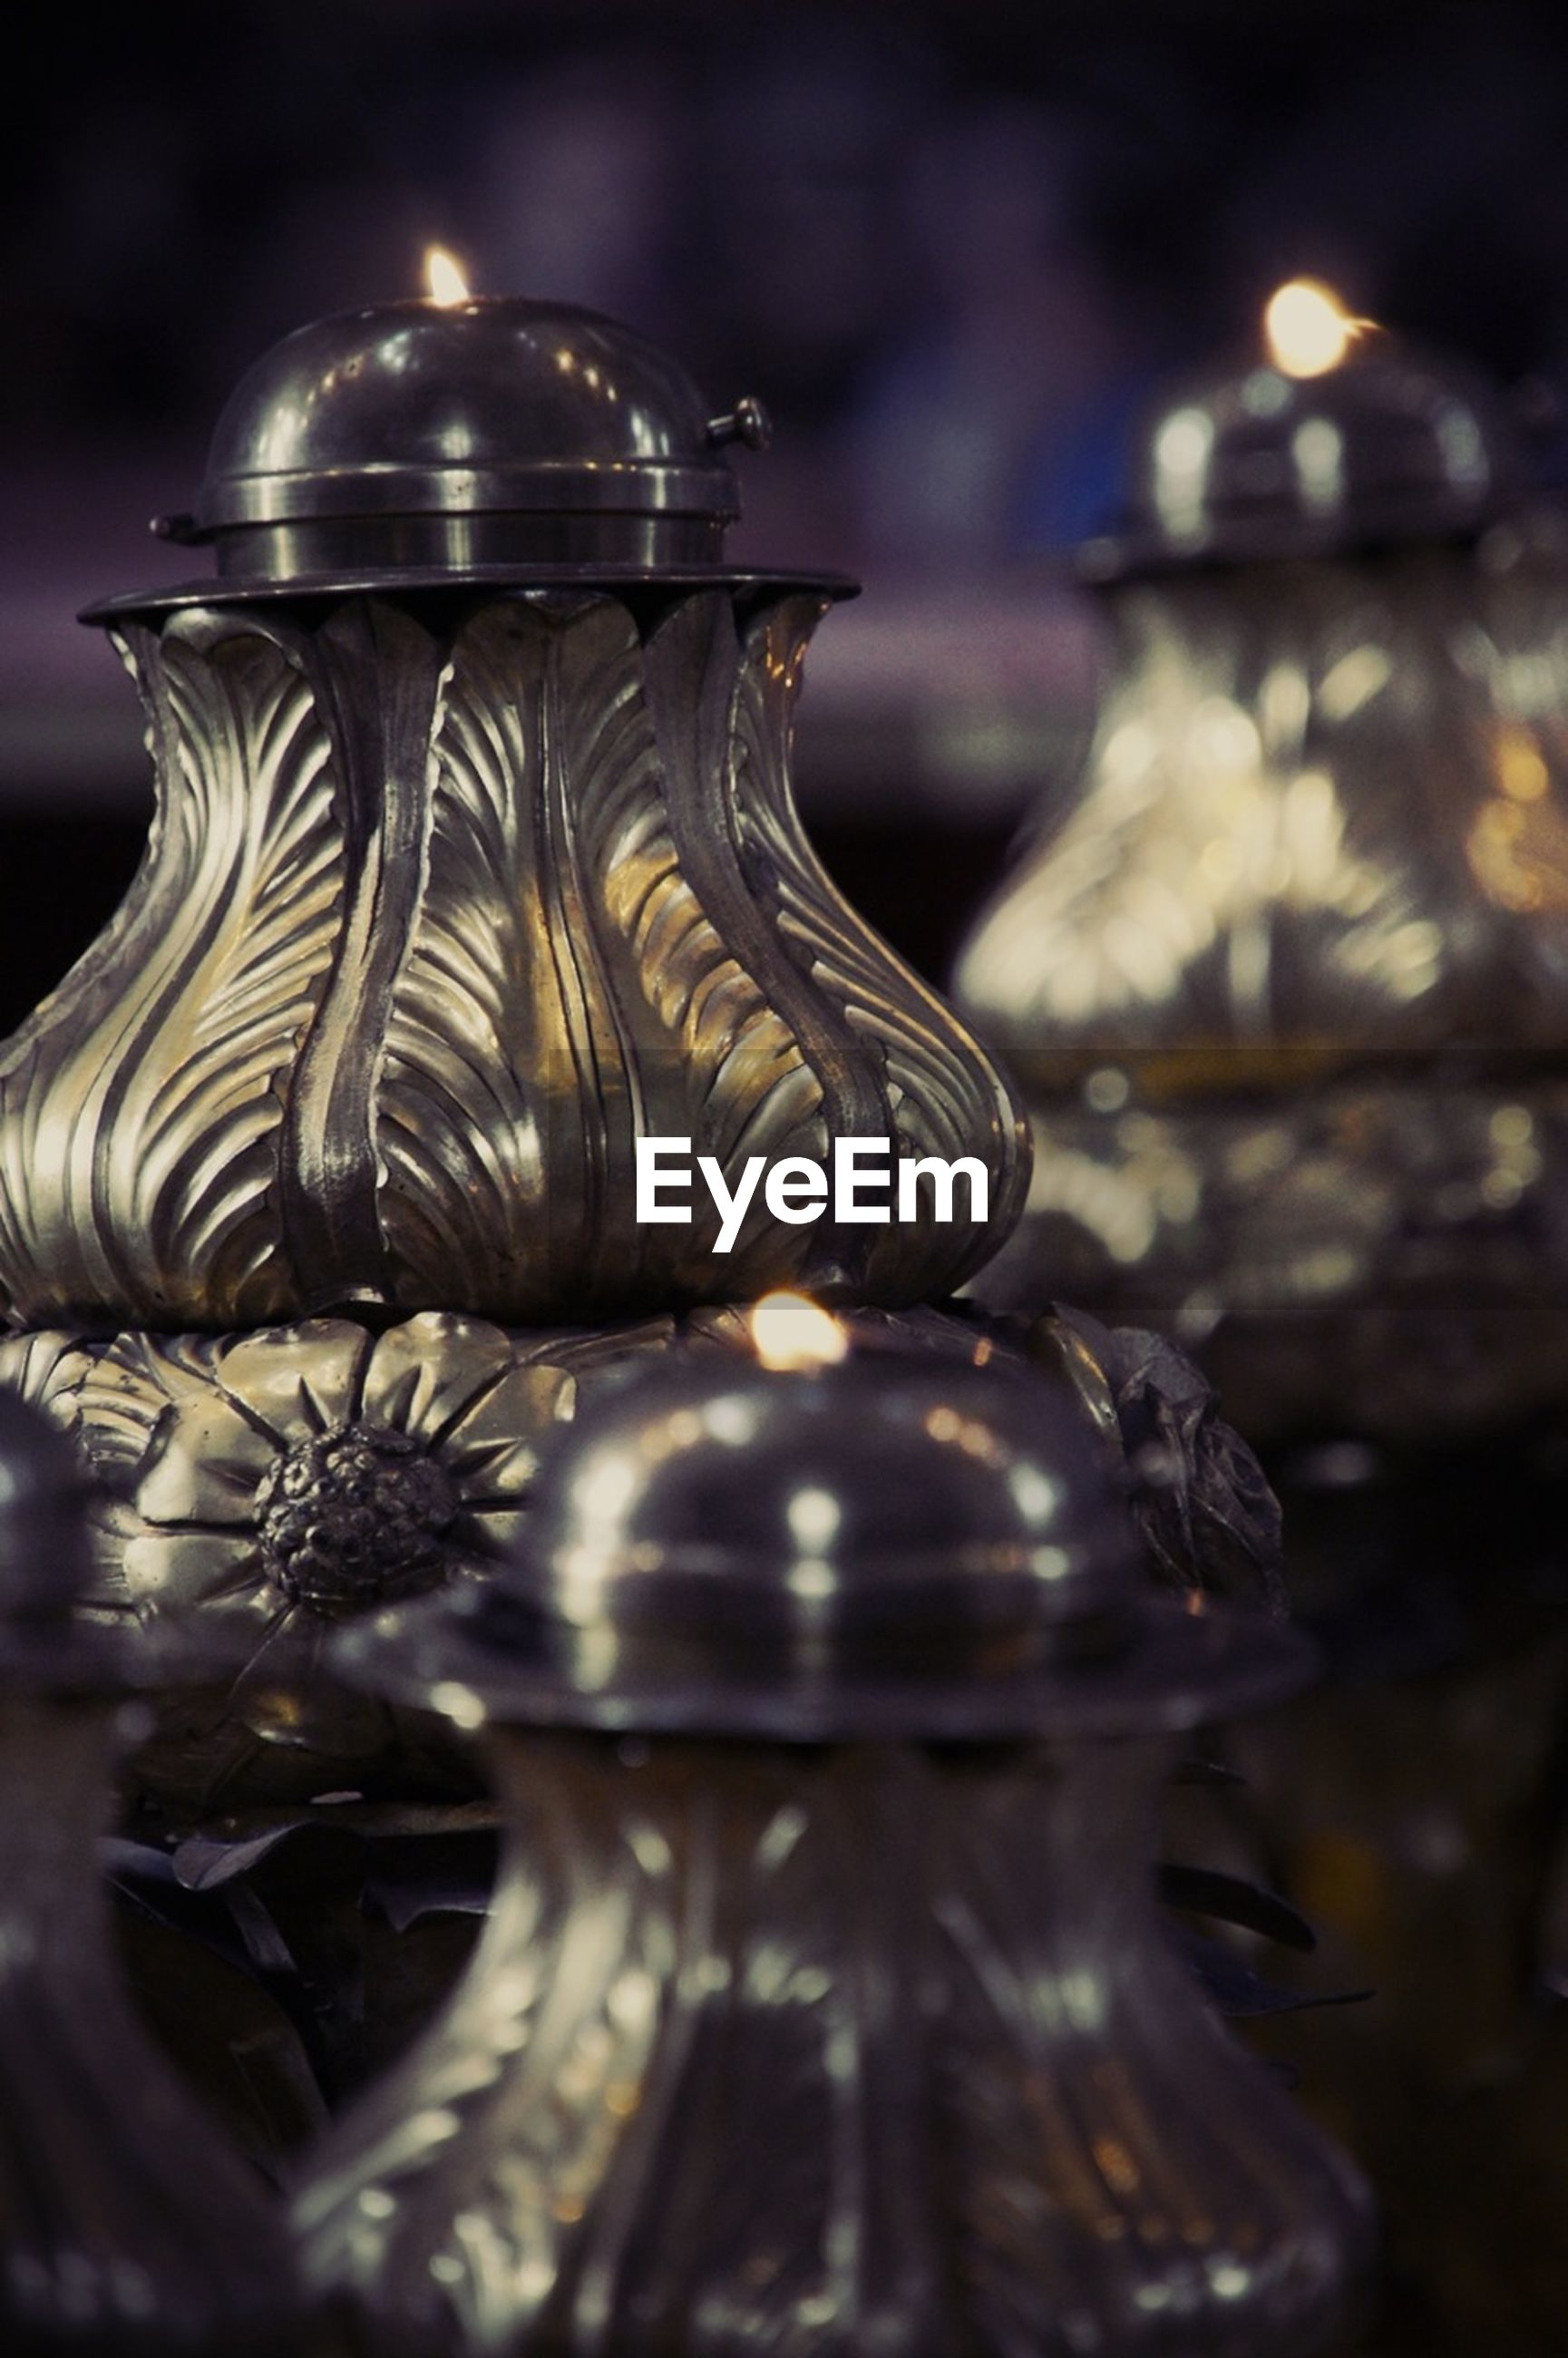 focus on foreground, close-up, religion, indoors, selective focus, spirituality, place of worship, night, art and craft, no people, metal, temple - building, ornate, illuminated, still life, decoration, old, hanging, gold colored